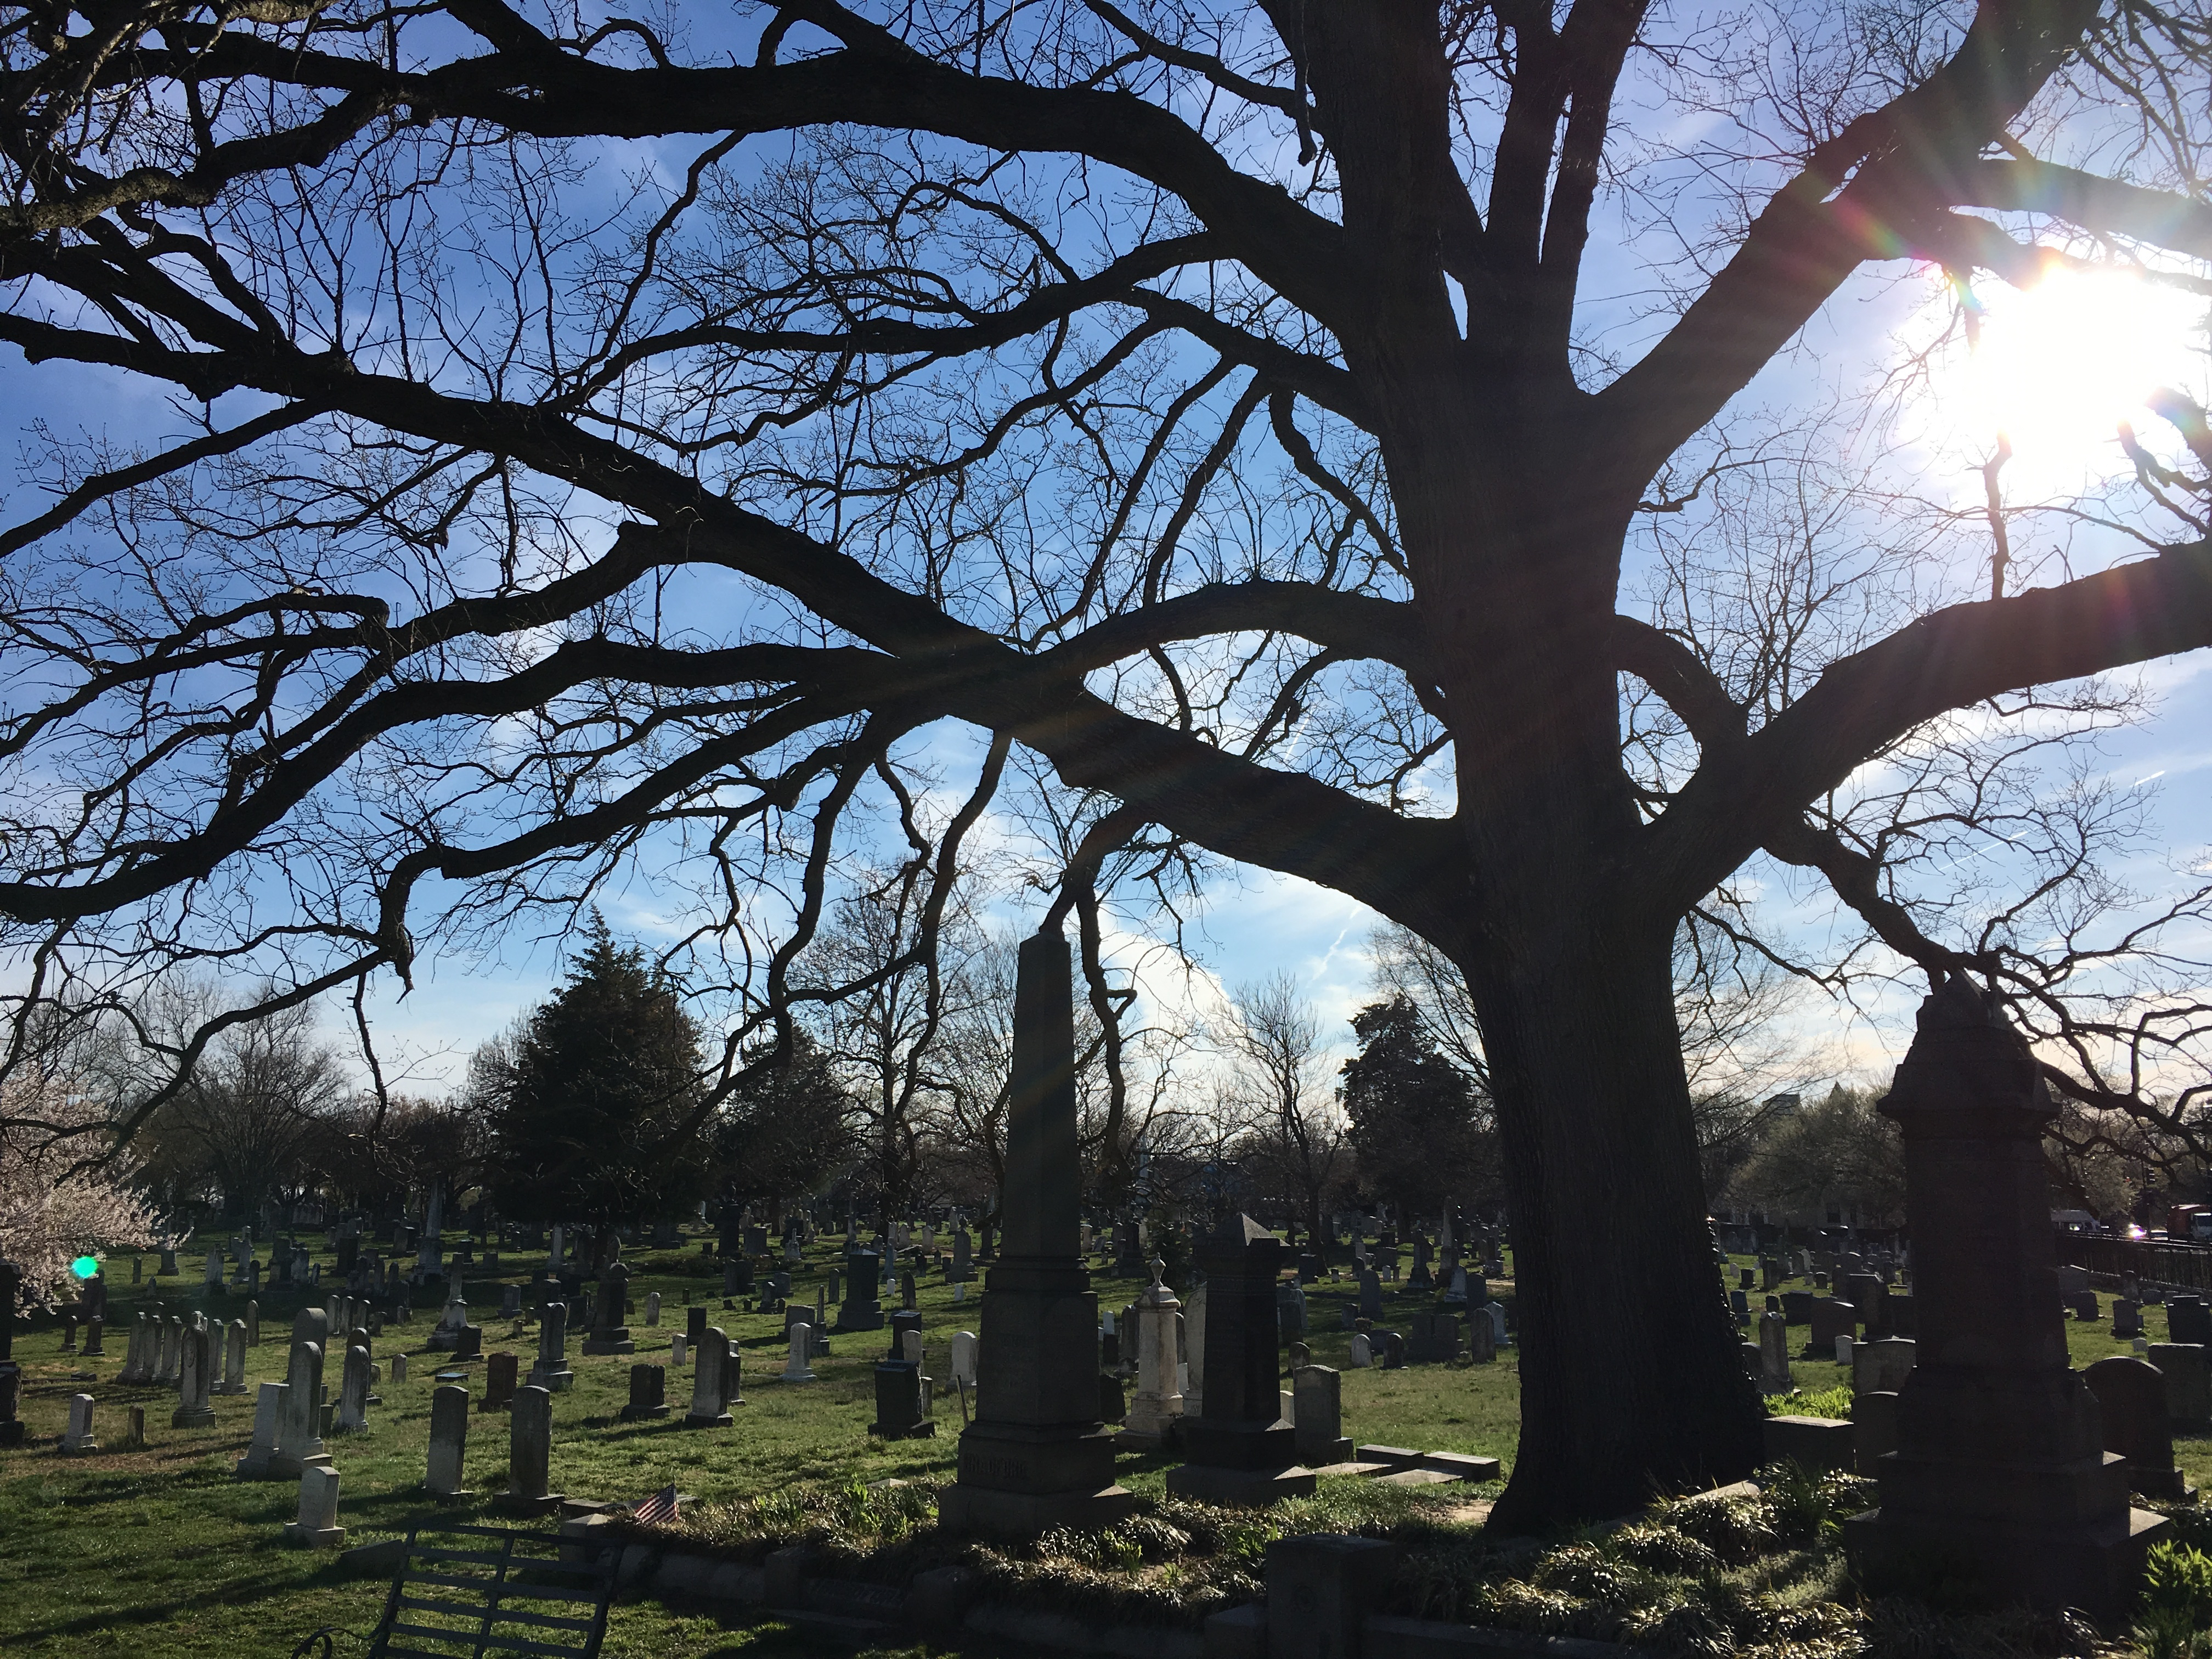 Primo late-afternoon cemetery shadows